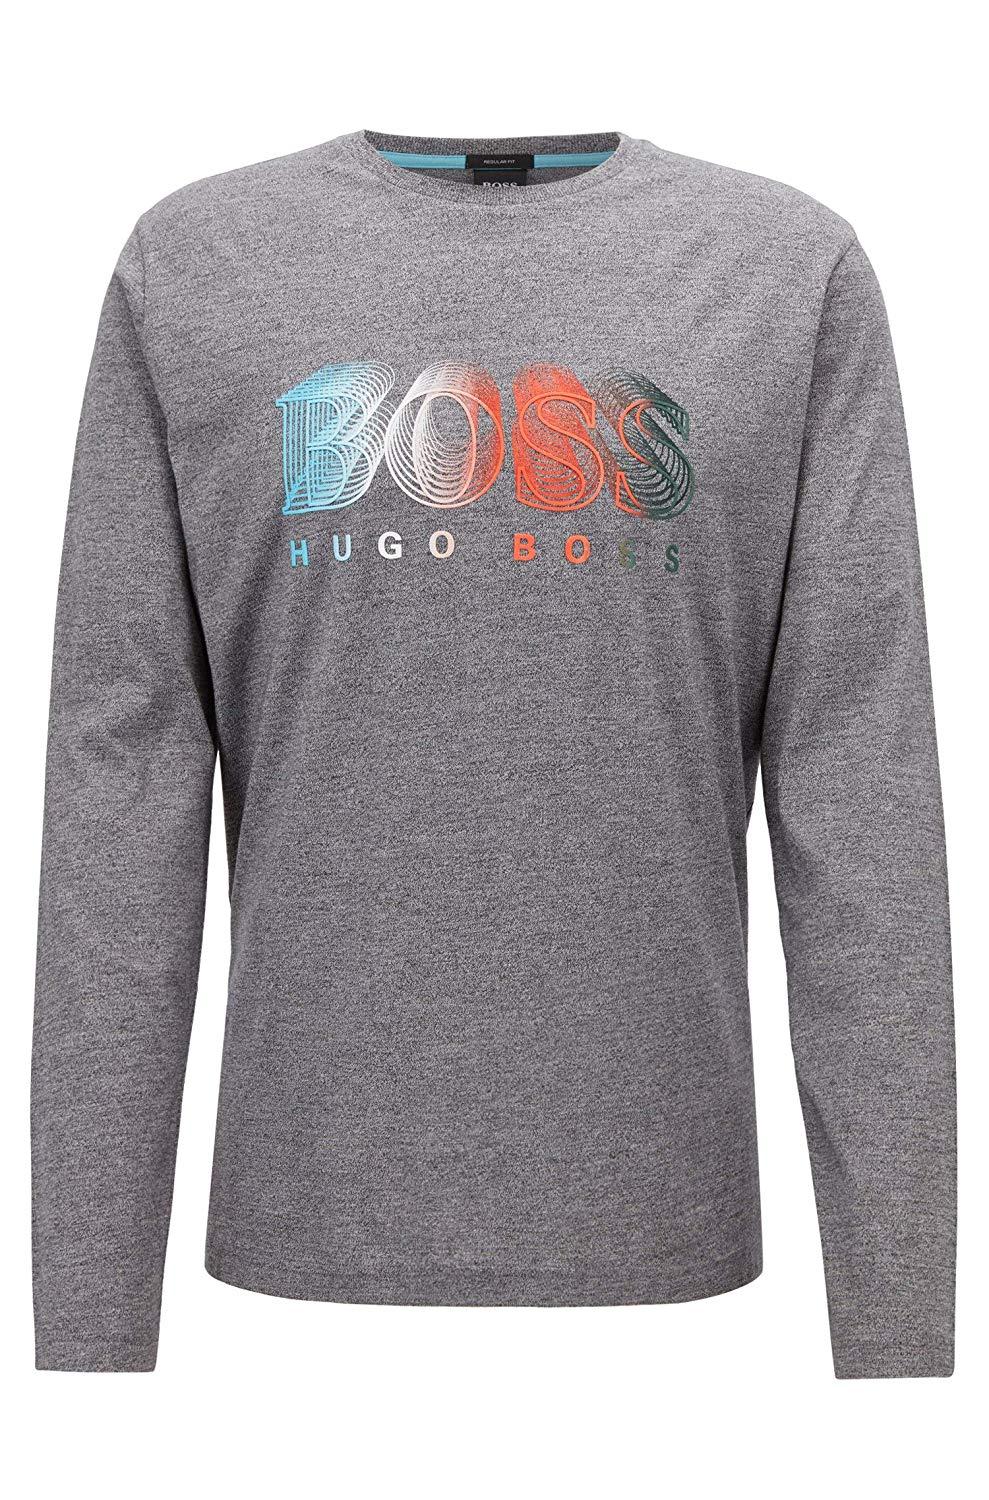 HUGO BOSS LONG-SLEEVED MEN'S T-SHIRT WITH MULTI-COLOURED LOGO GRAPHIC 50399931-005